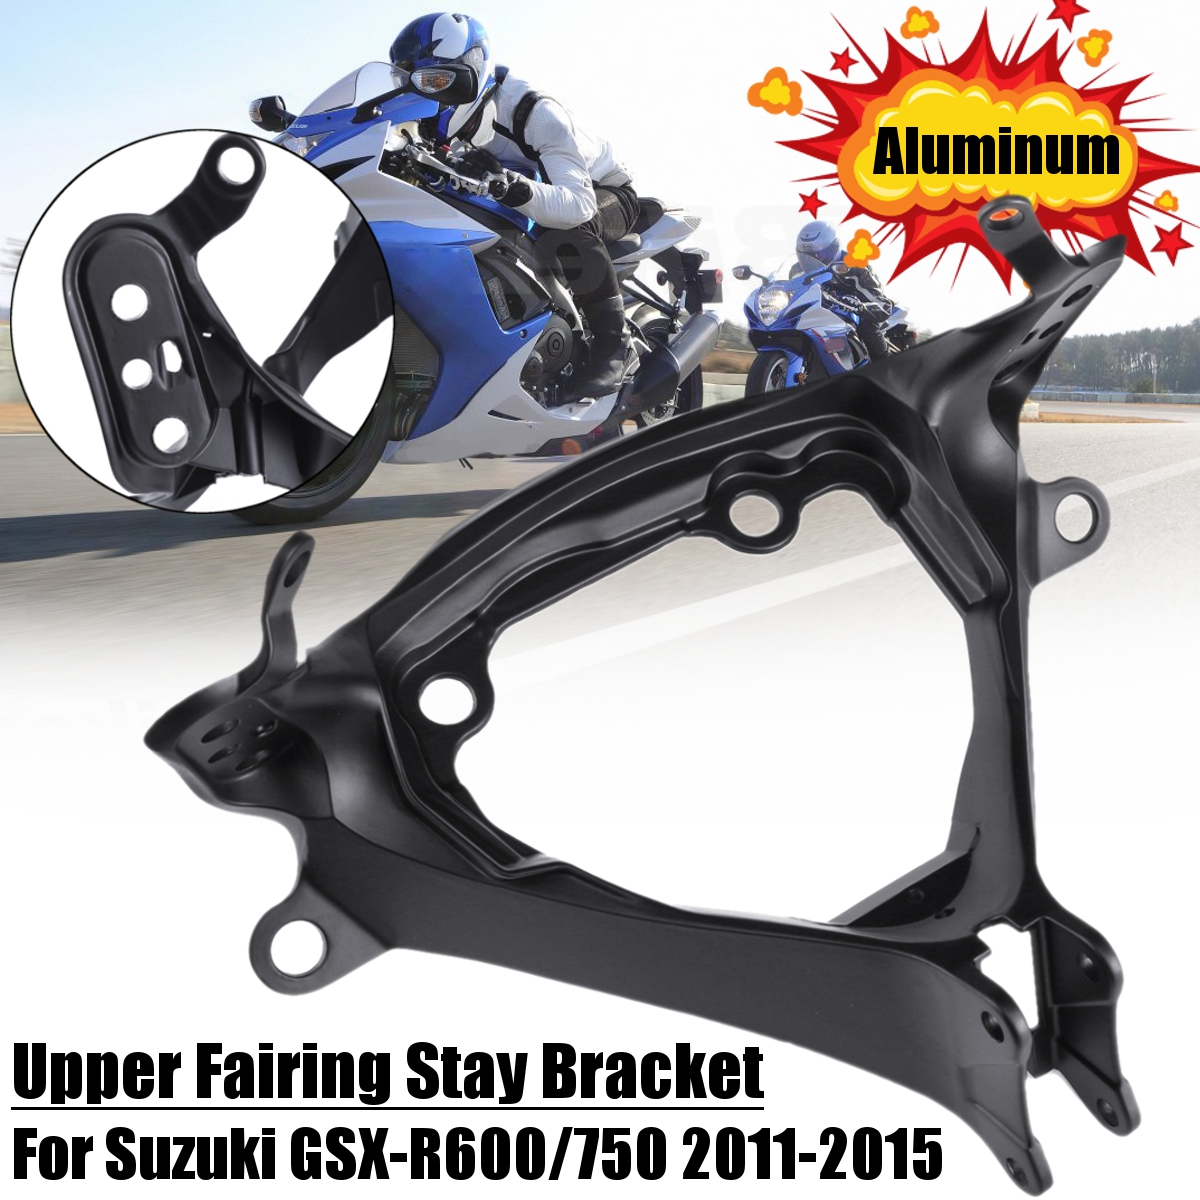 Upper Front Fairing Stay Bracket for 2004-2005 Suzuki GSXR 600 750 GSXR600 04-05